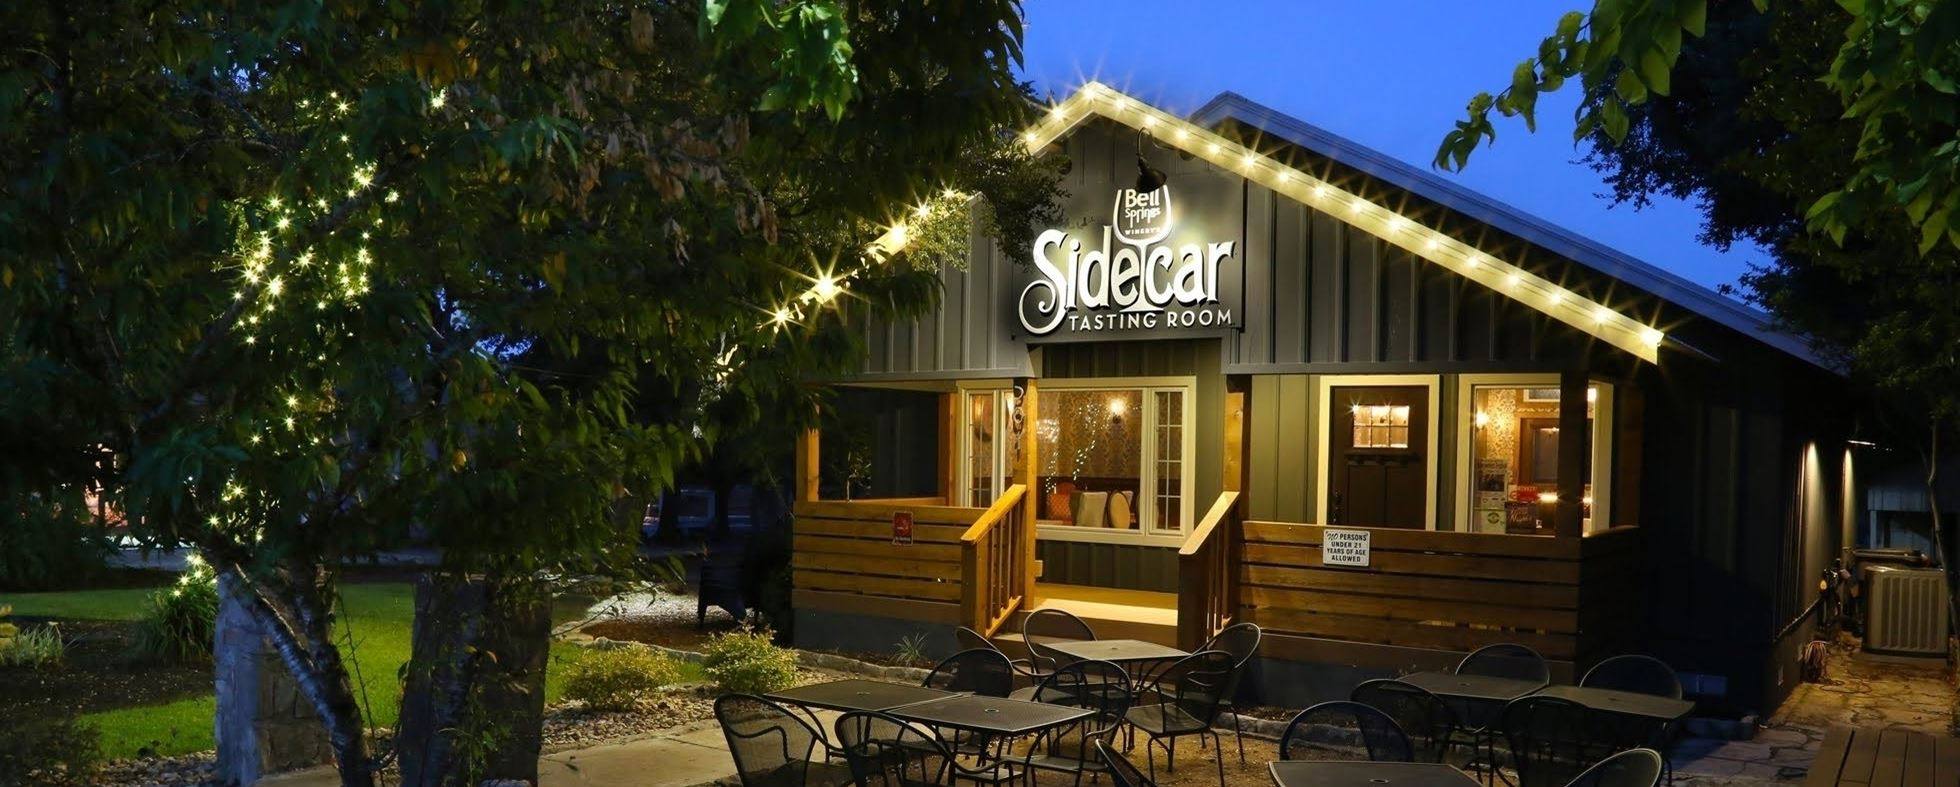 The outside of Sidecar Tasting Room at dusk.